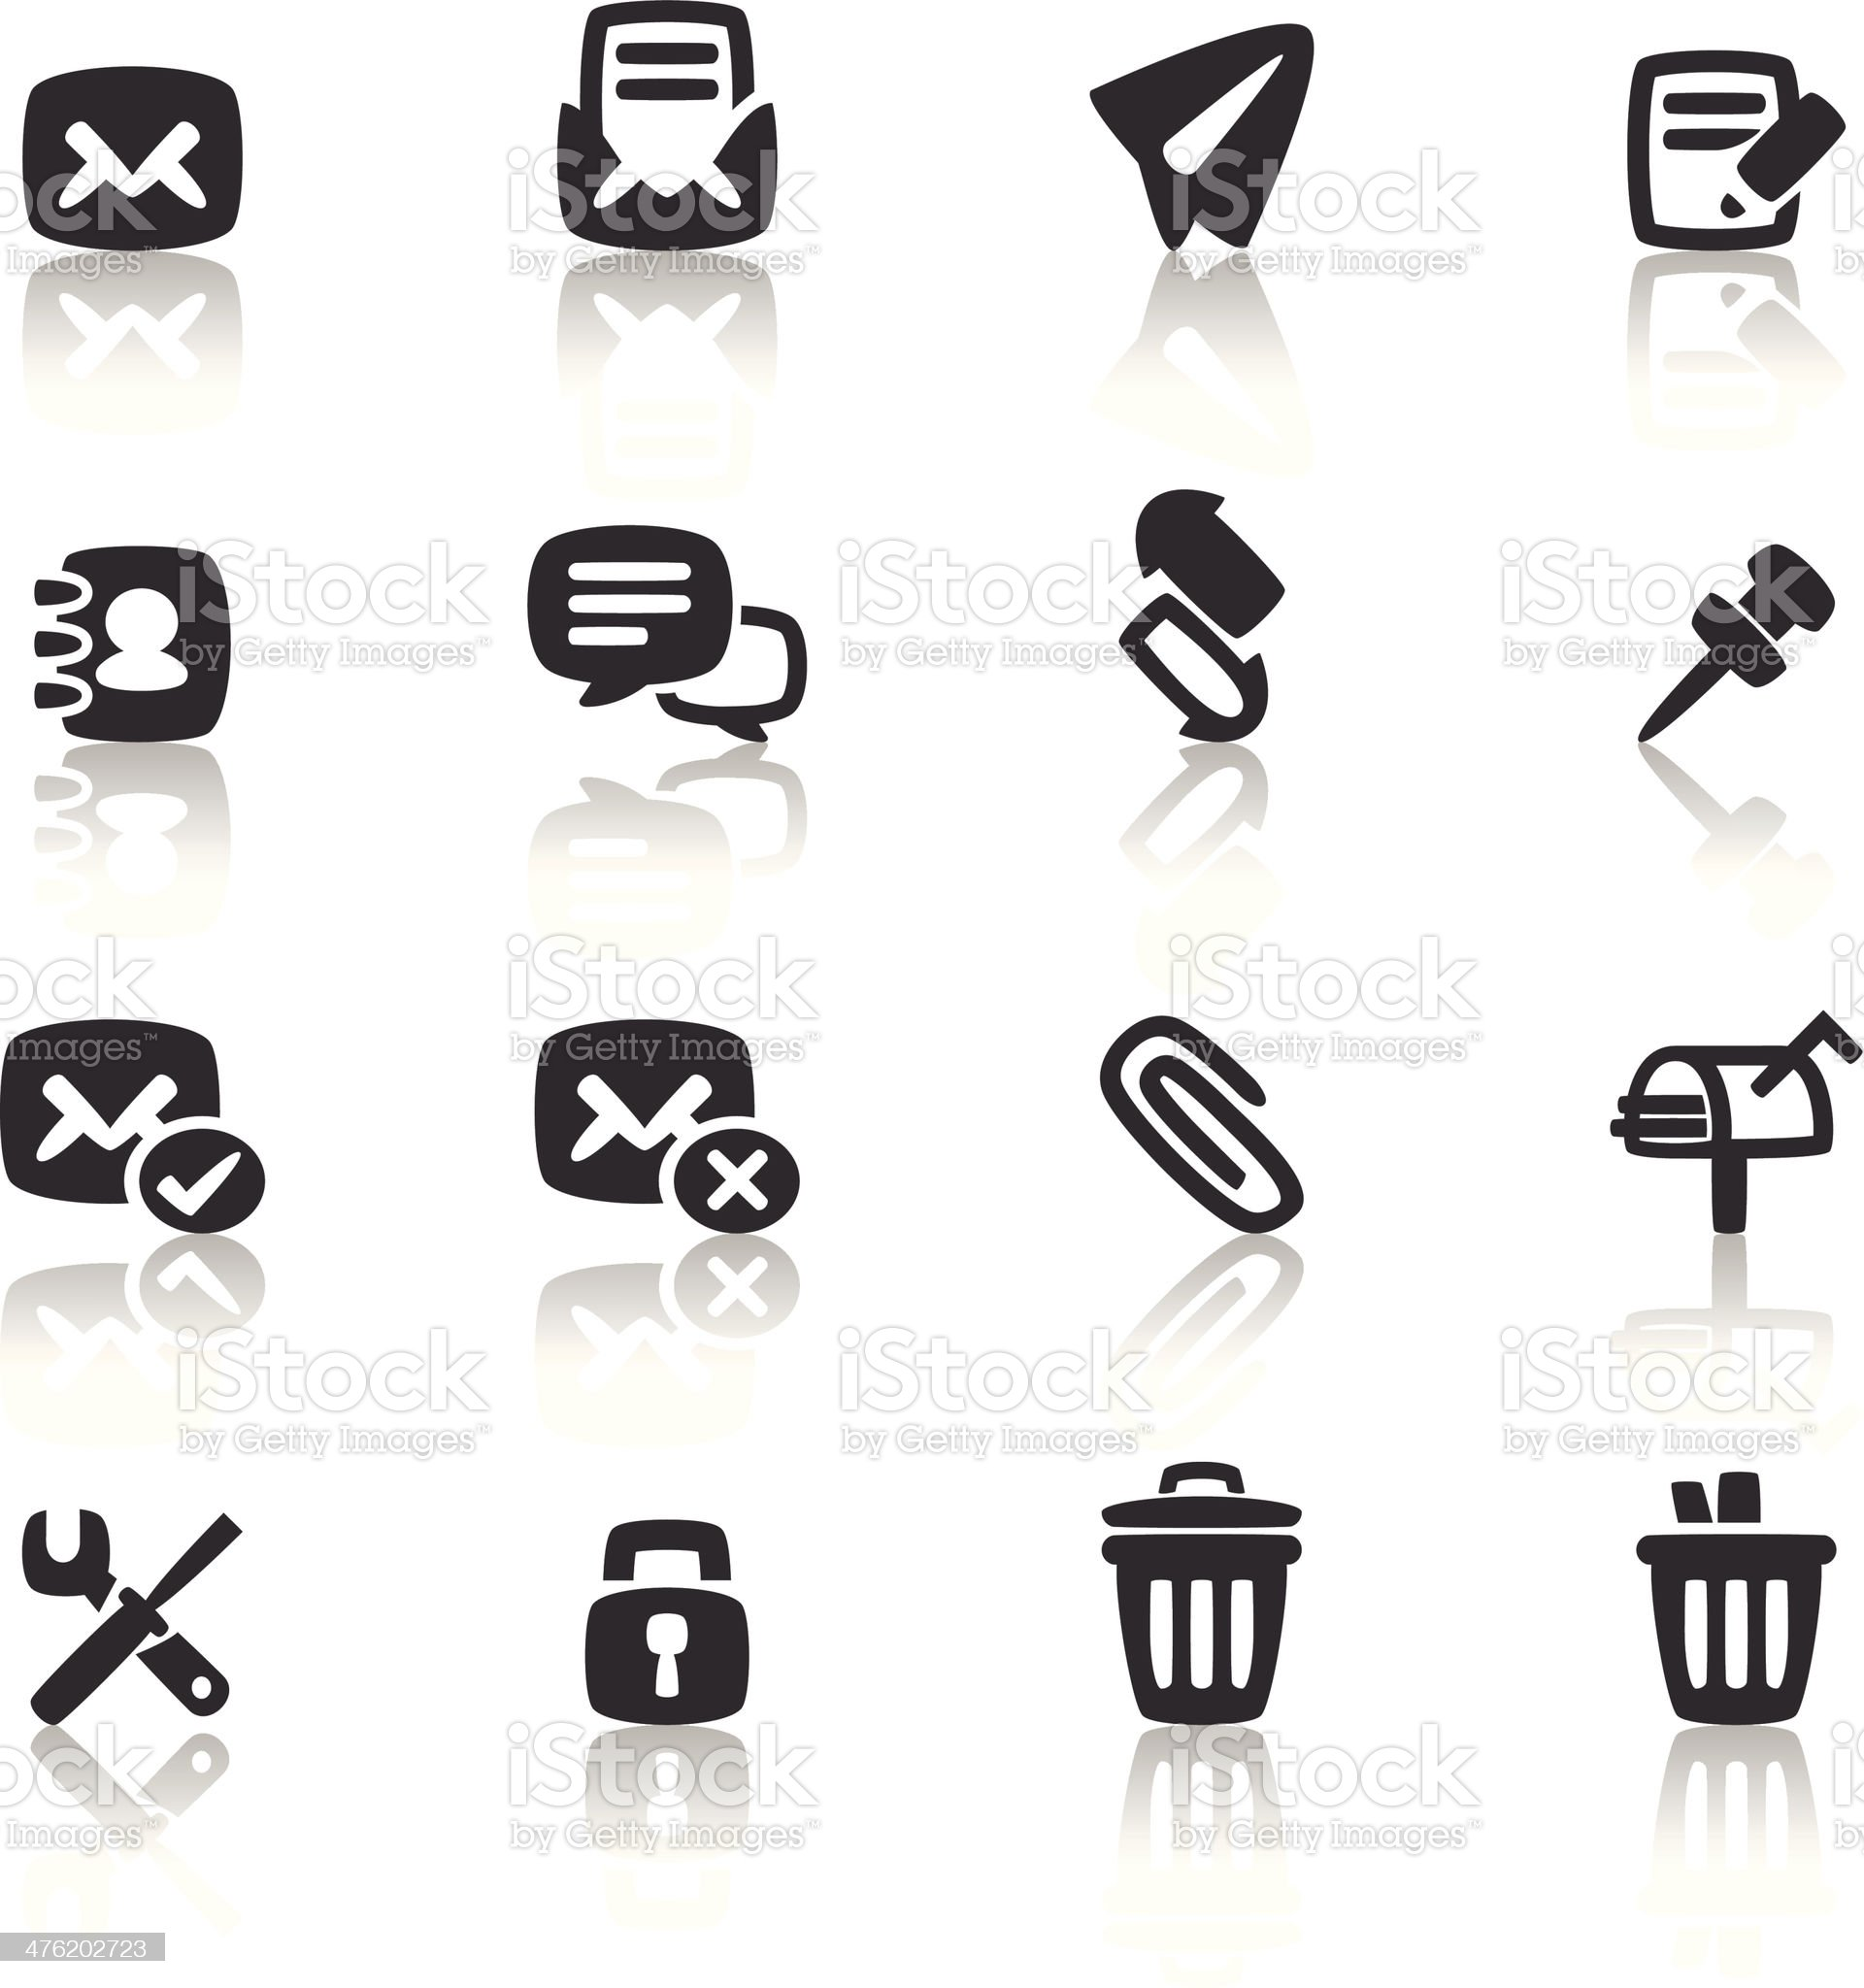 Mailing Icon royalty-free stock vector art